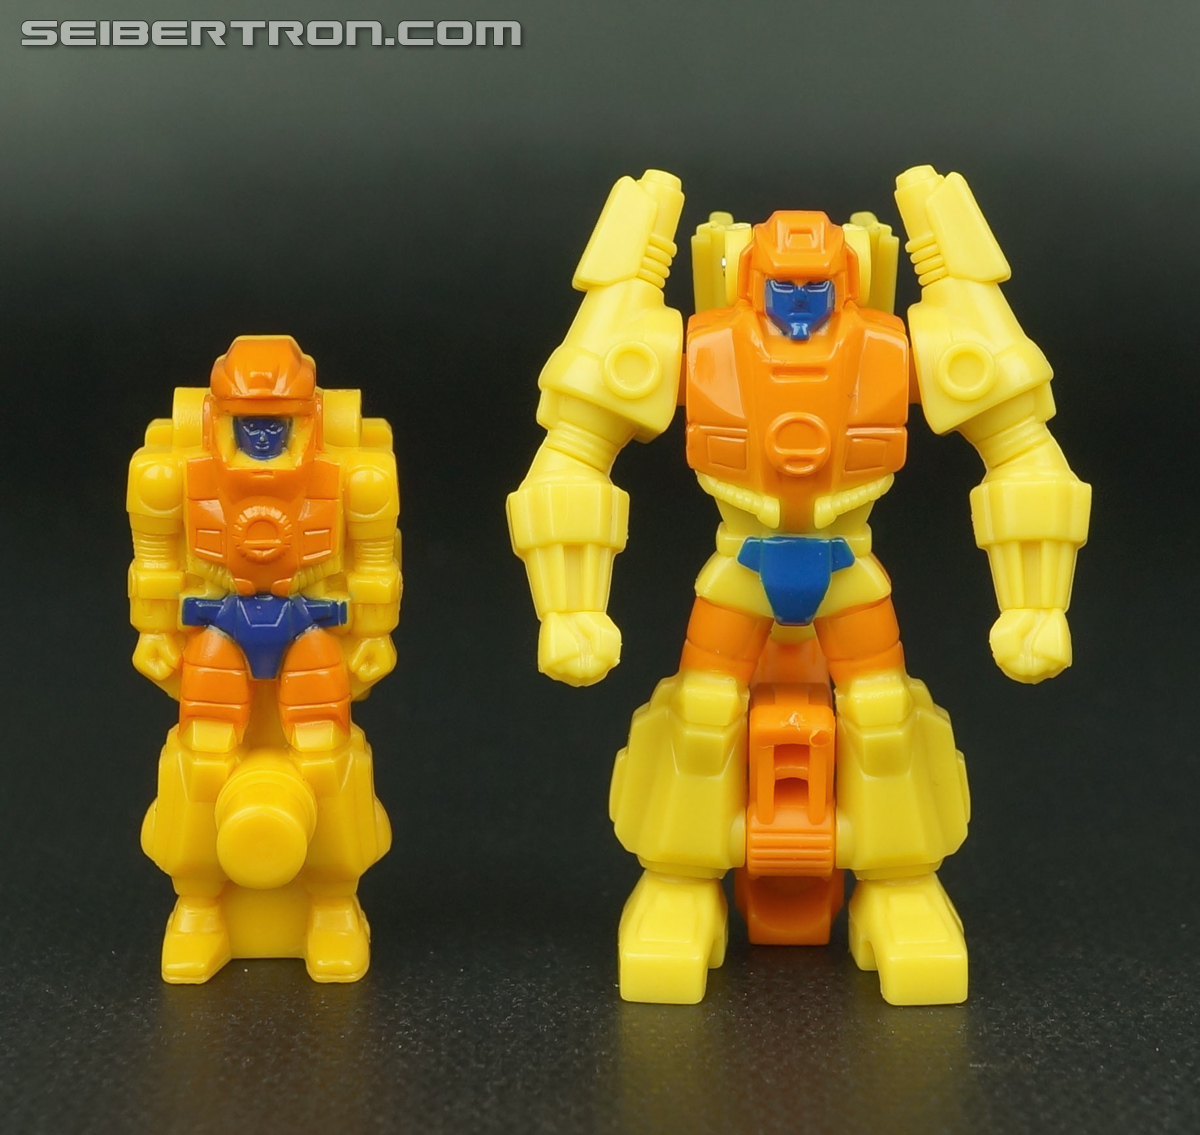 Transformers Generations Caliburst (Tracer) (Image #53 of 63)